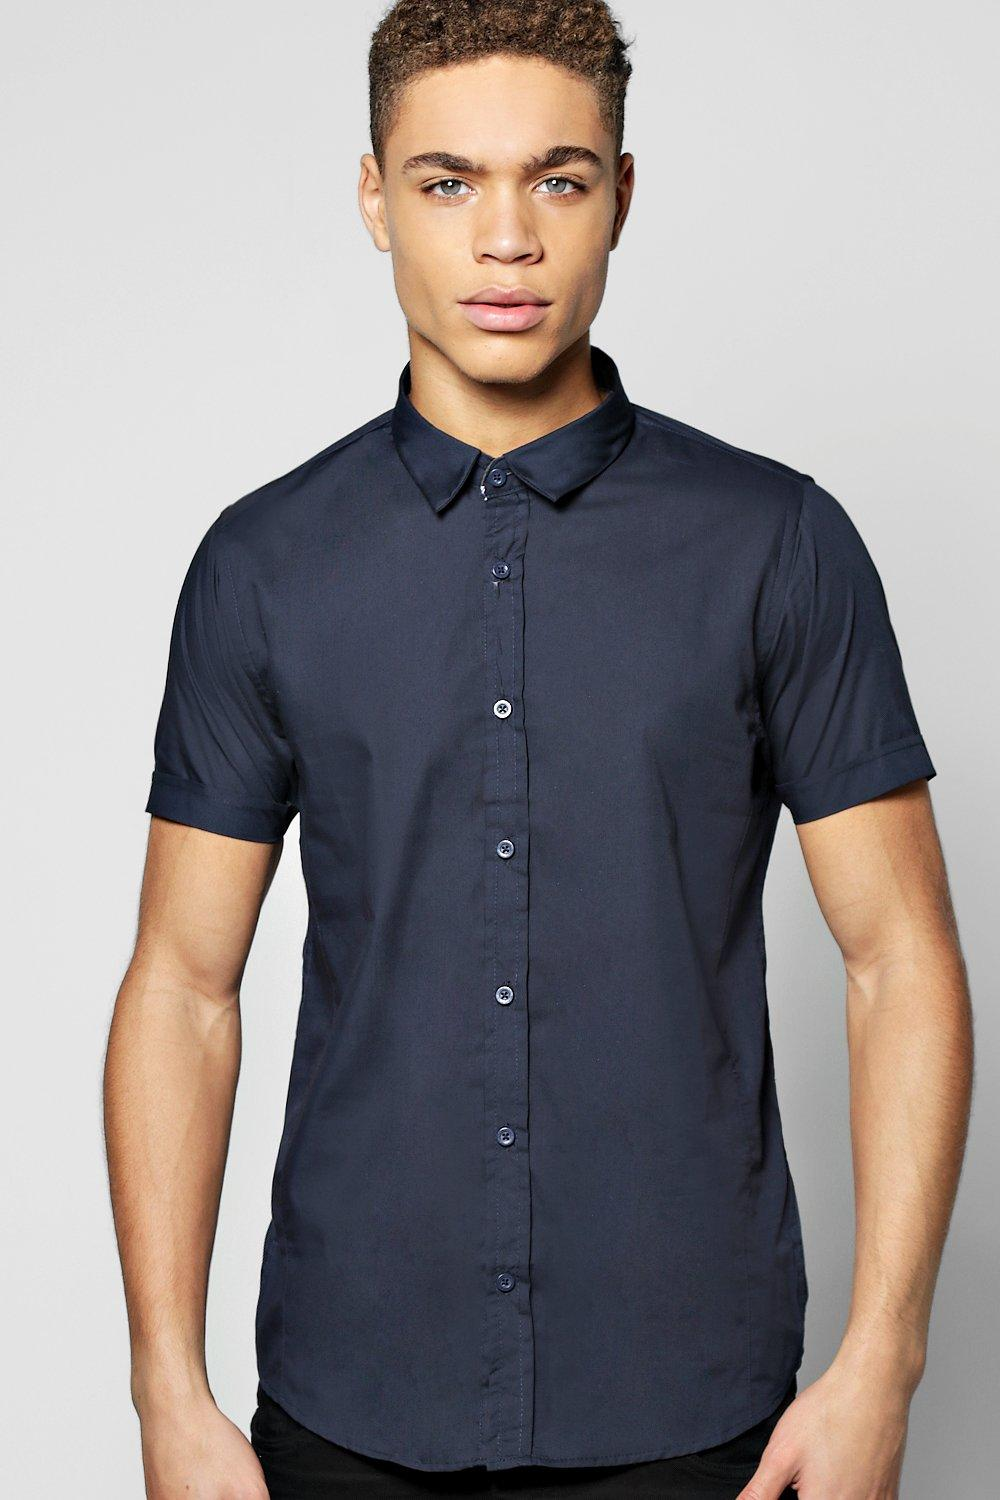 Poly Cotton Short Sleeve Shirt